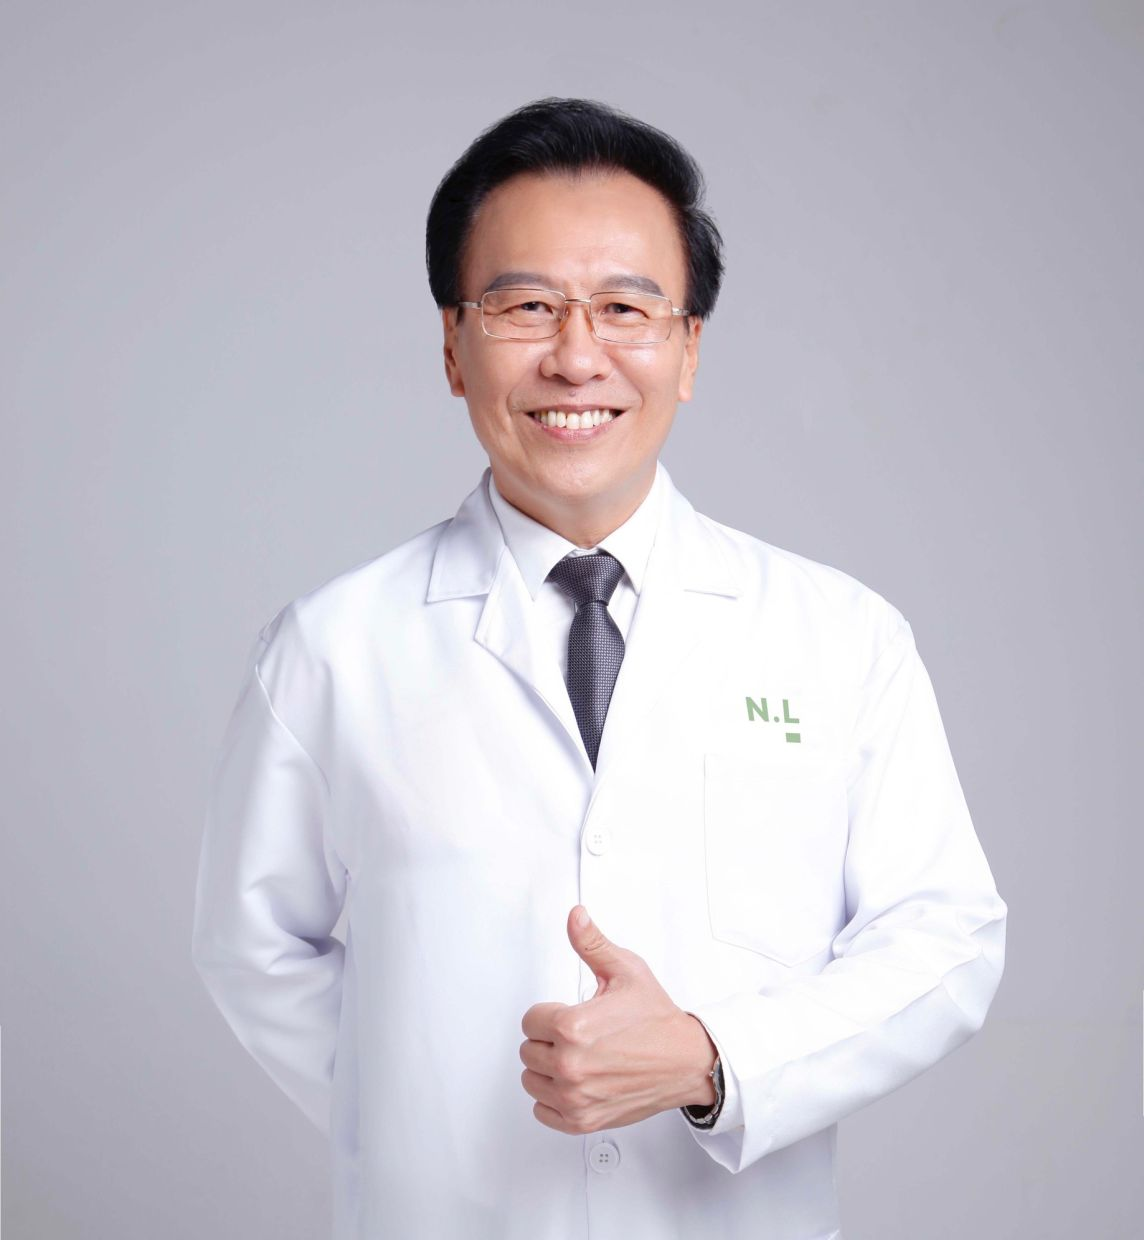 NATURECARE.LIFE was founded by plant-based diet advocate and nutritionist Chong Fat Eng.